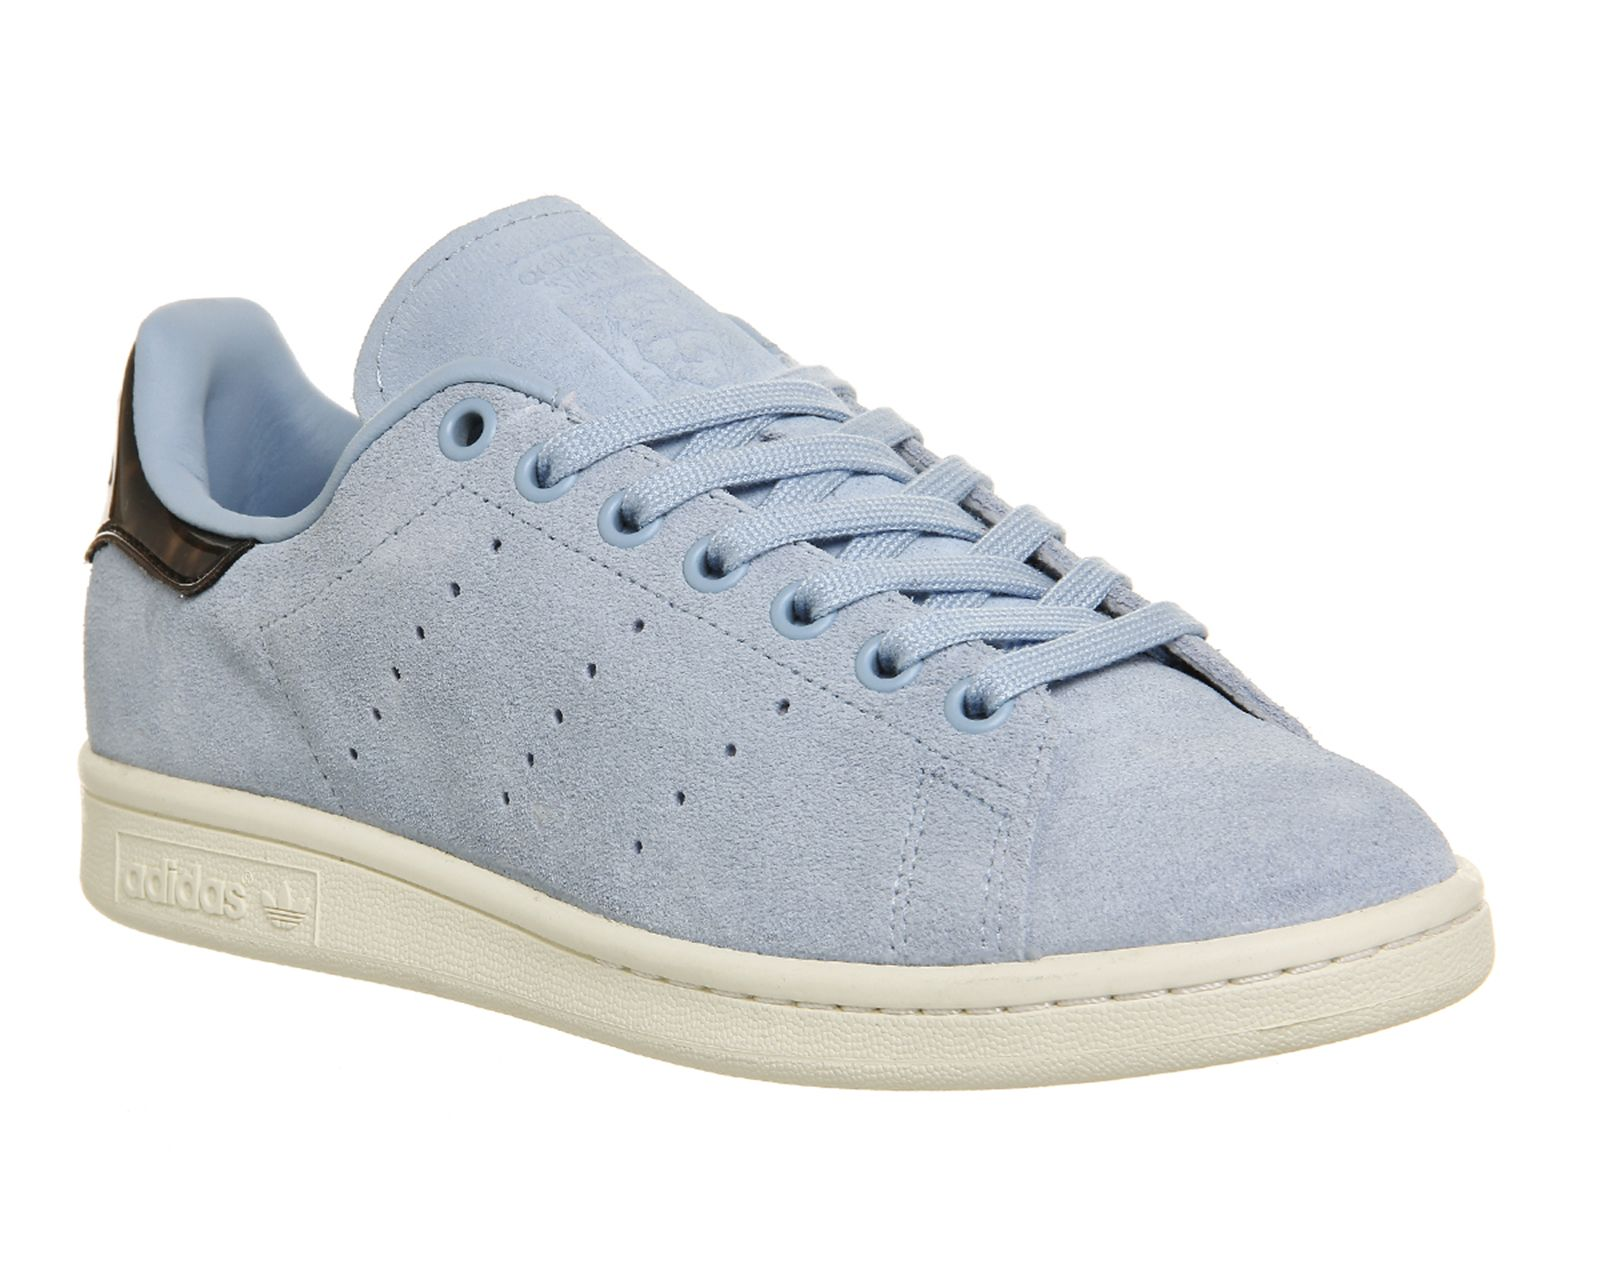 Buy Clear Sky Tortoise Shell Exclusive Adidas Stan Smith from OFFICE.co.uk.